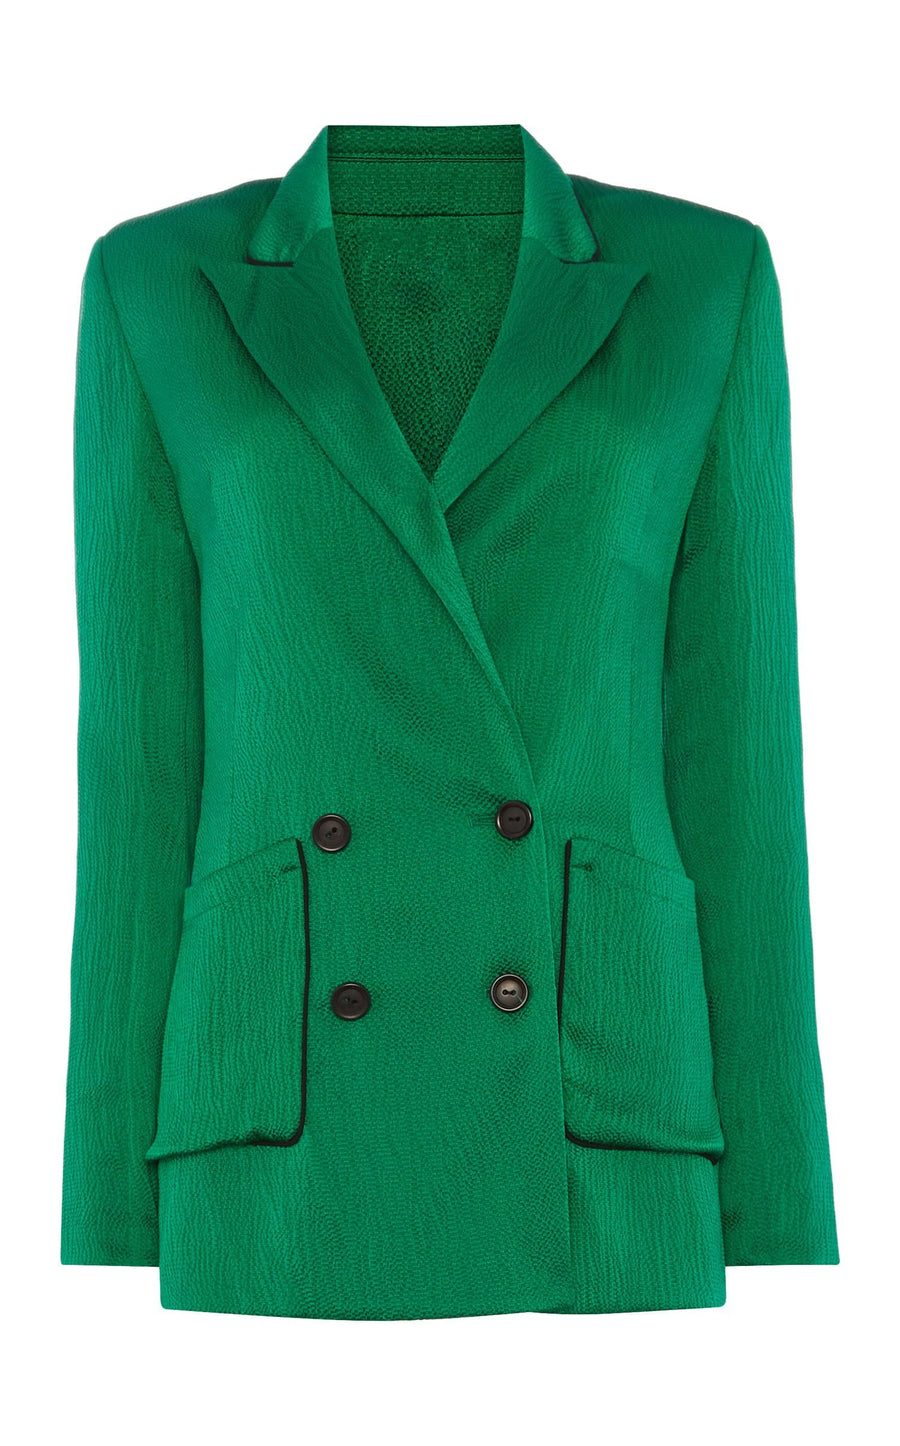 Talbot Jacket In Emerald/Black from Roland Mouret